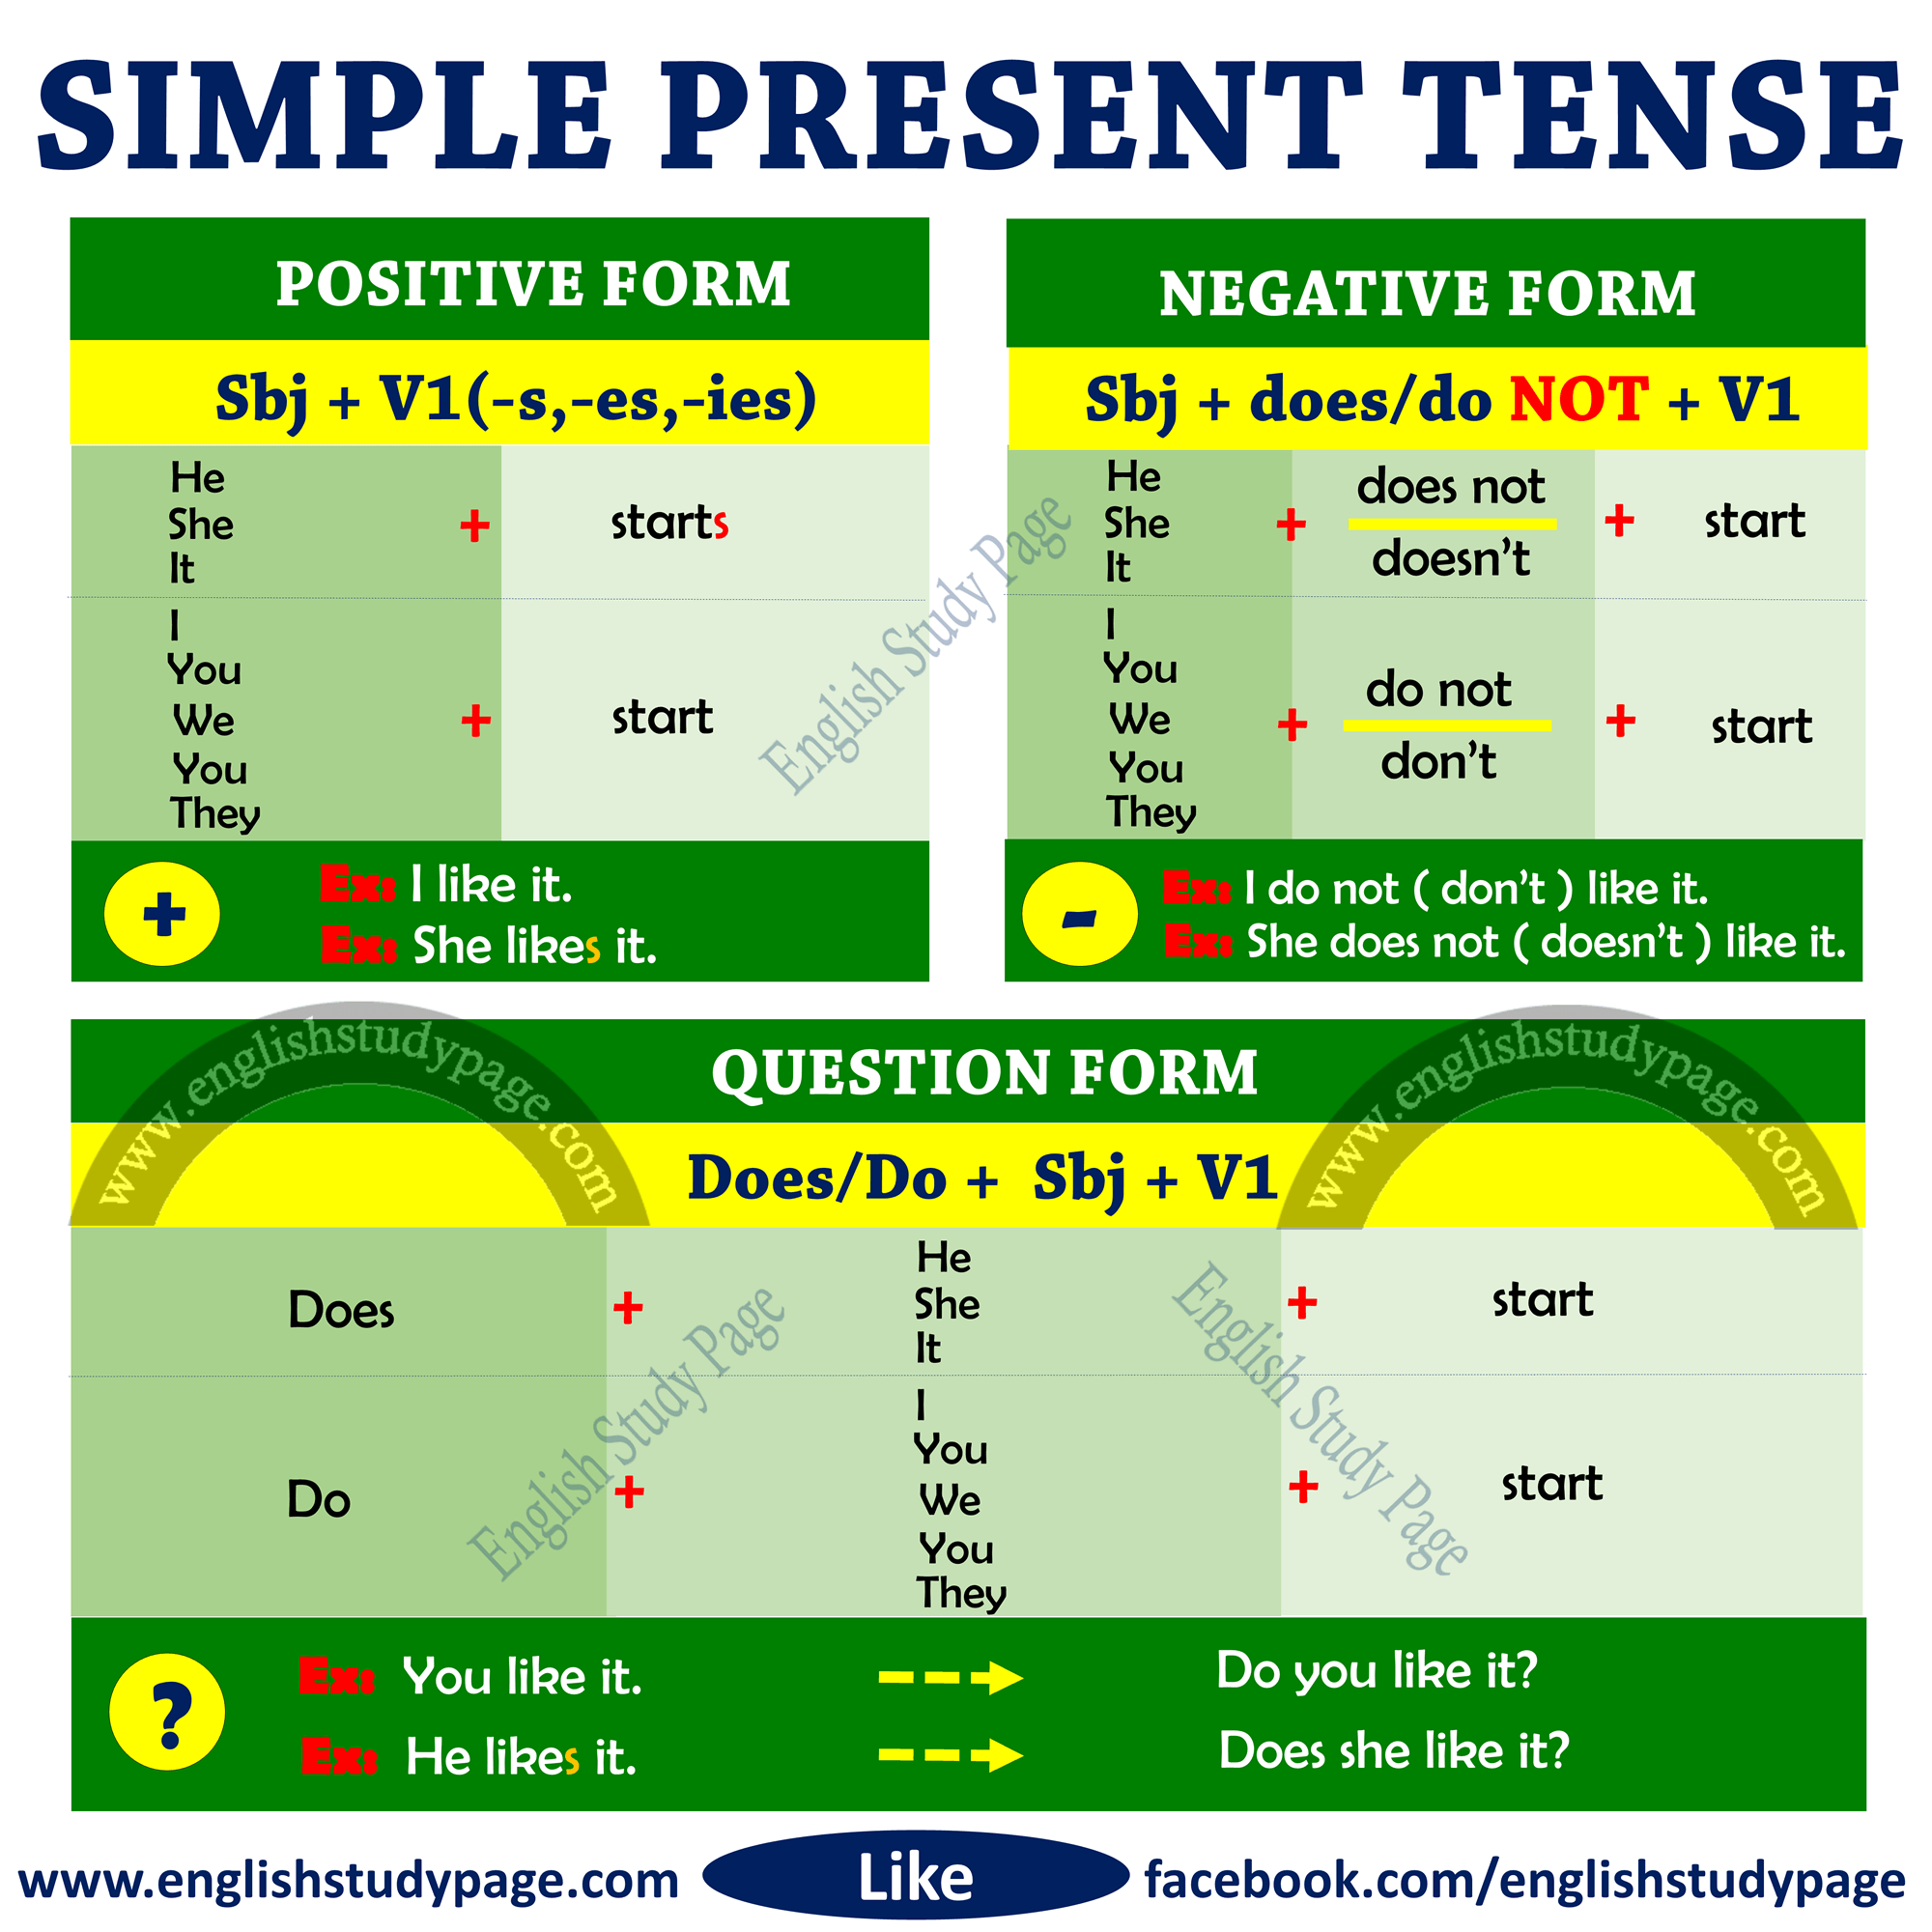 Structure of Simple Present Tense - English Study Page